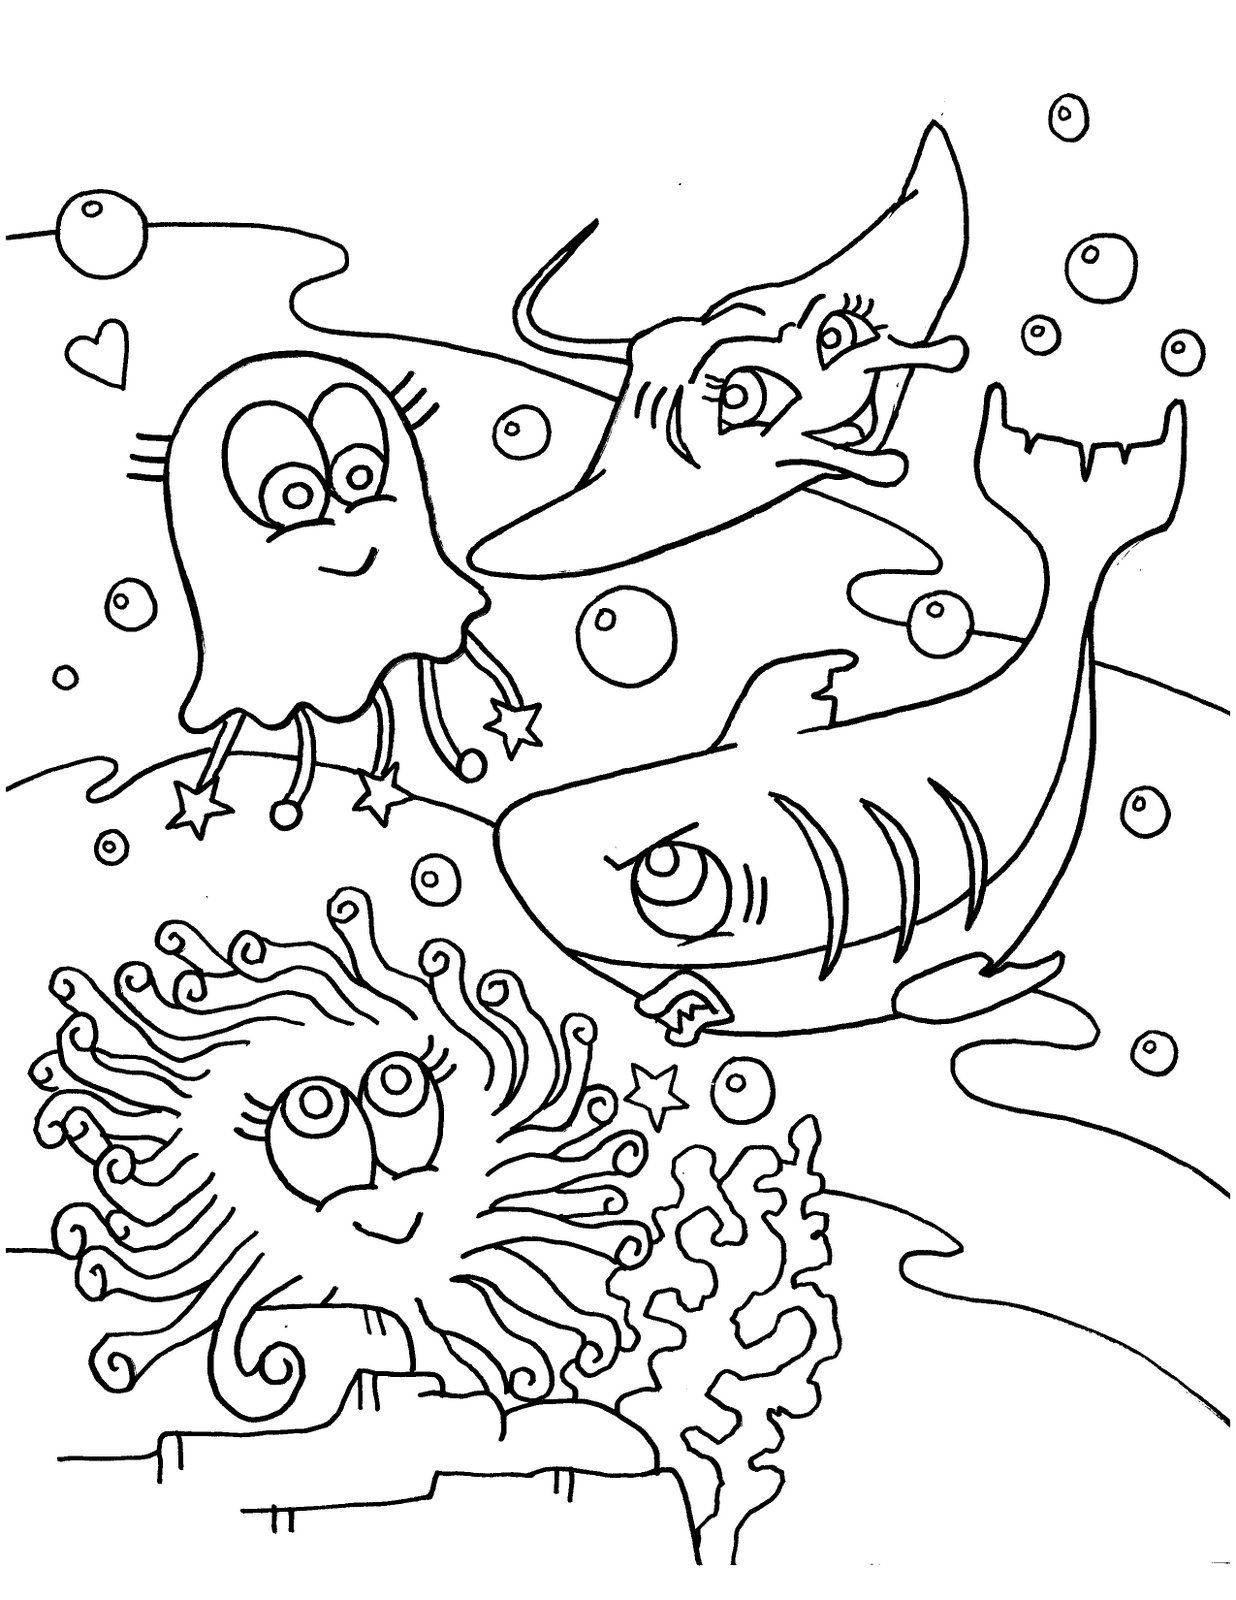 Coloring Pages Under The Sea Ocean Themed Ocean Coloring Pages